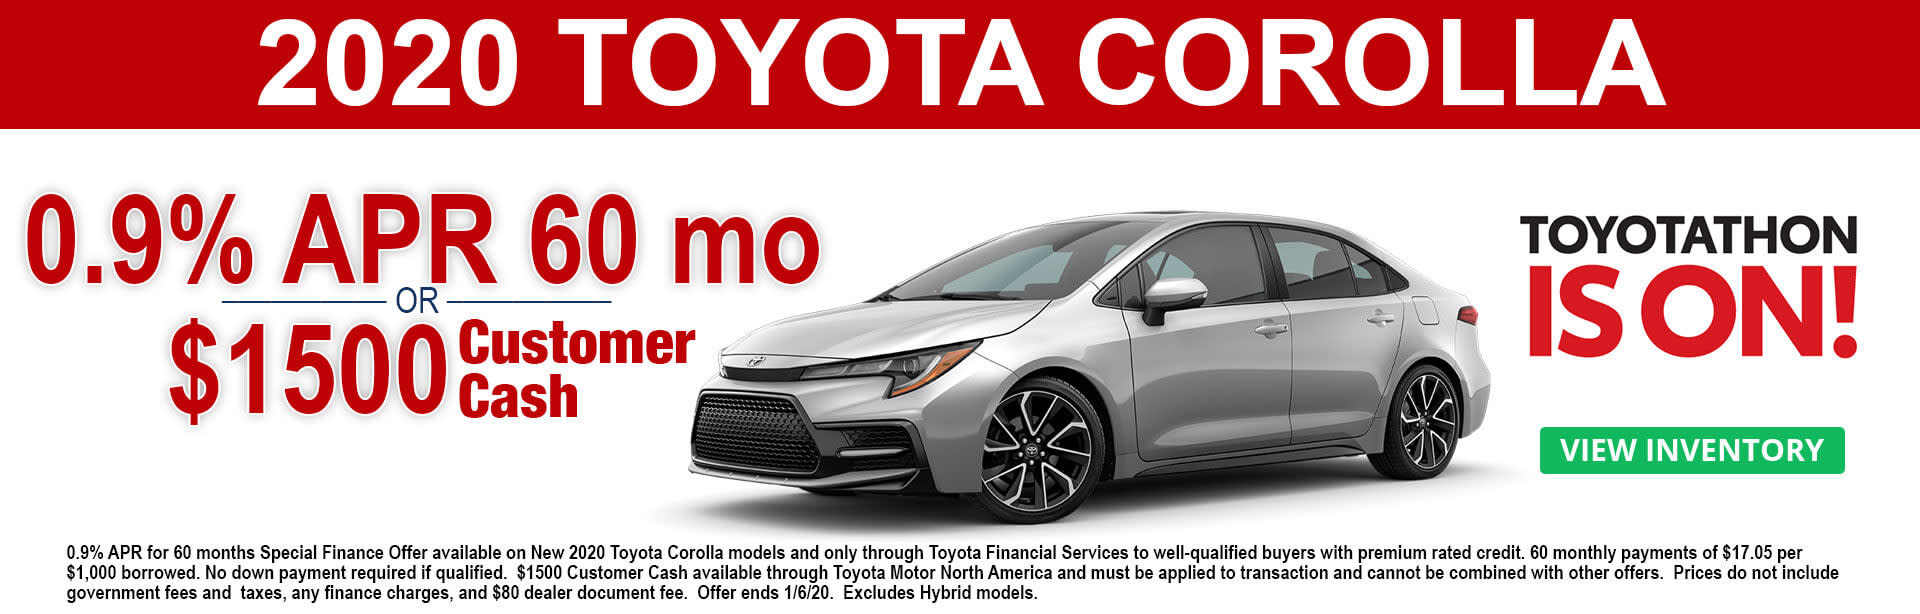 2020 Toyota Corolla APR and Cash Offer - Toyotathon